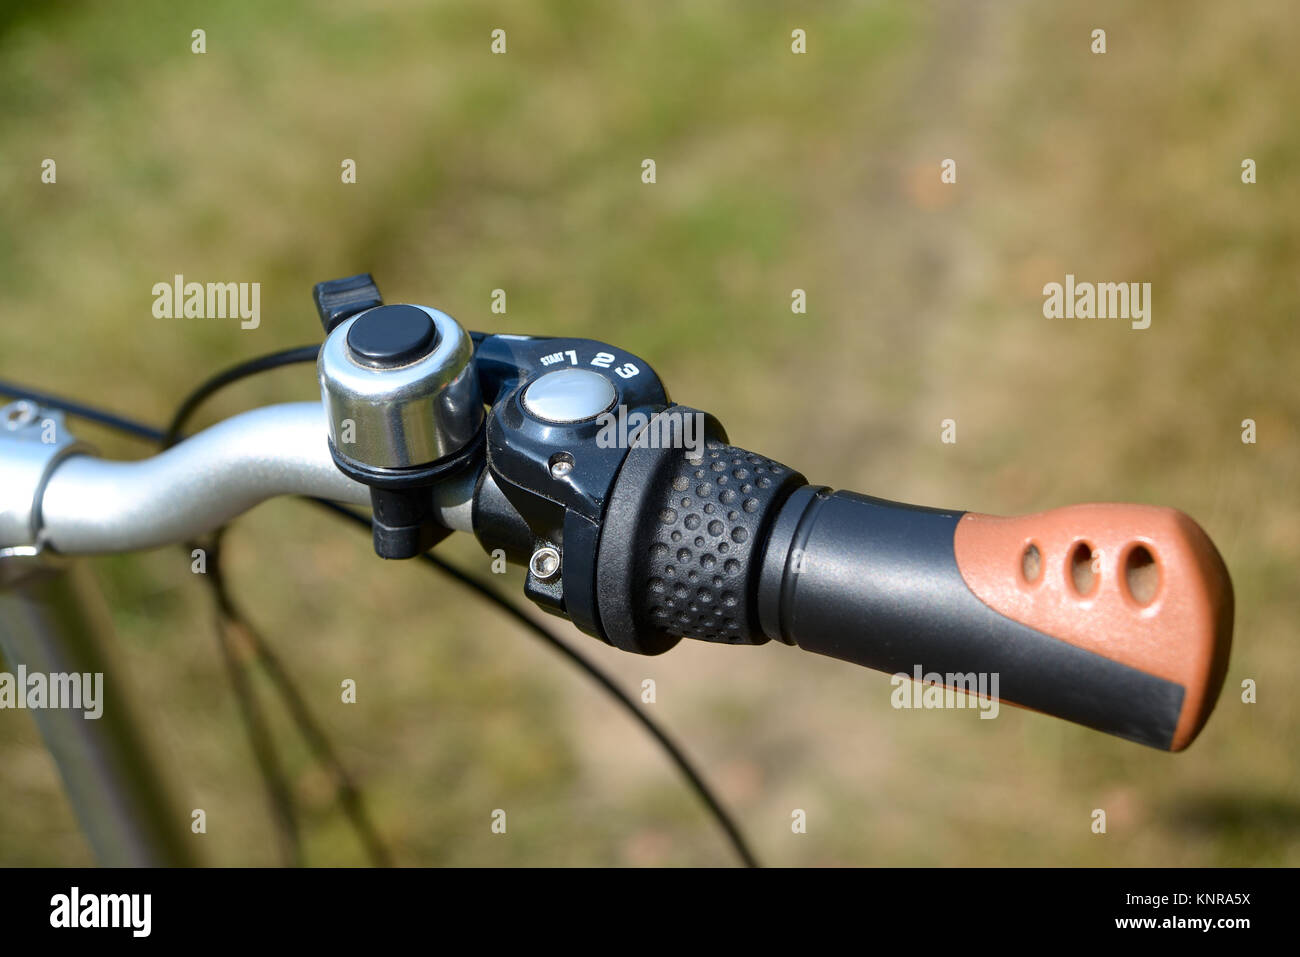 The bicycle handlebar with a gear selector and a close-up call - Stock Image